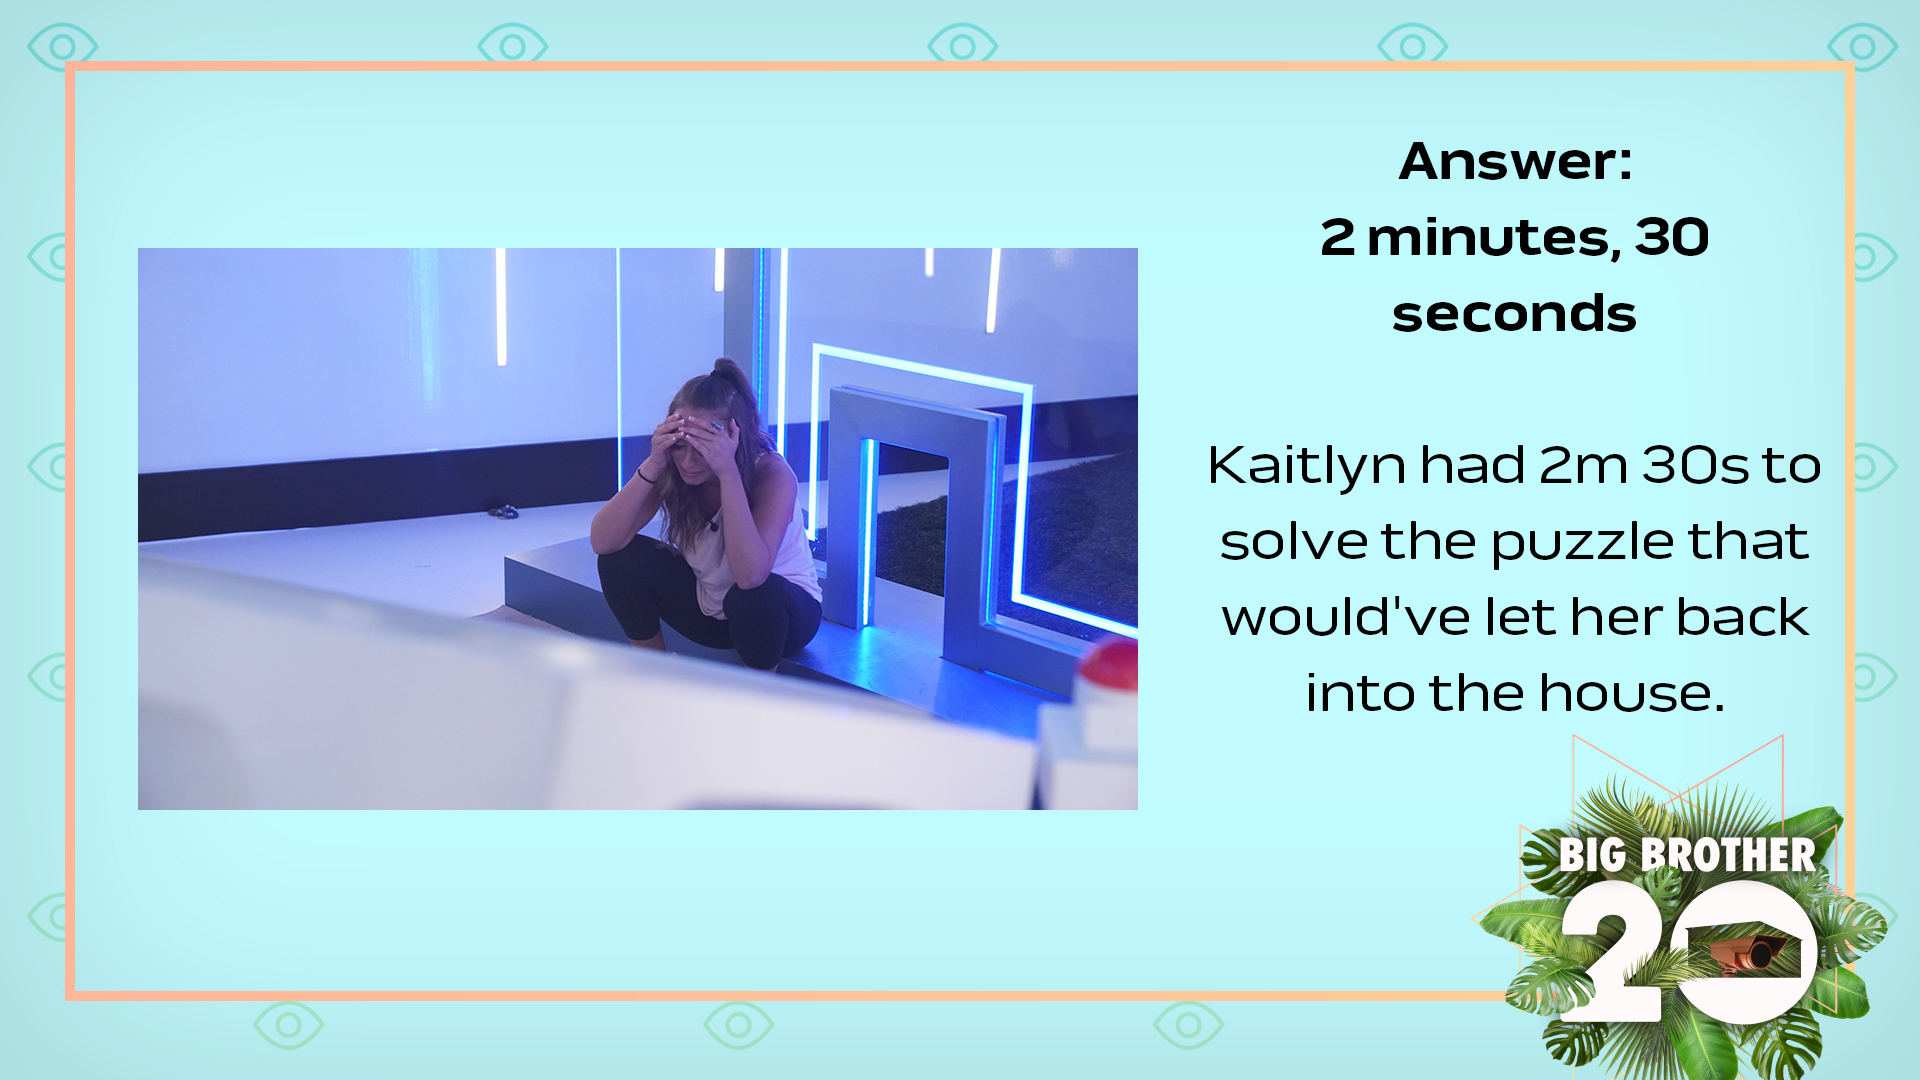 Answer: 2 minutes, 30 seconds